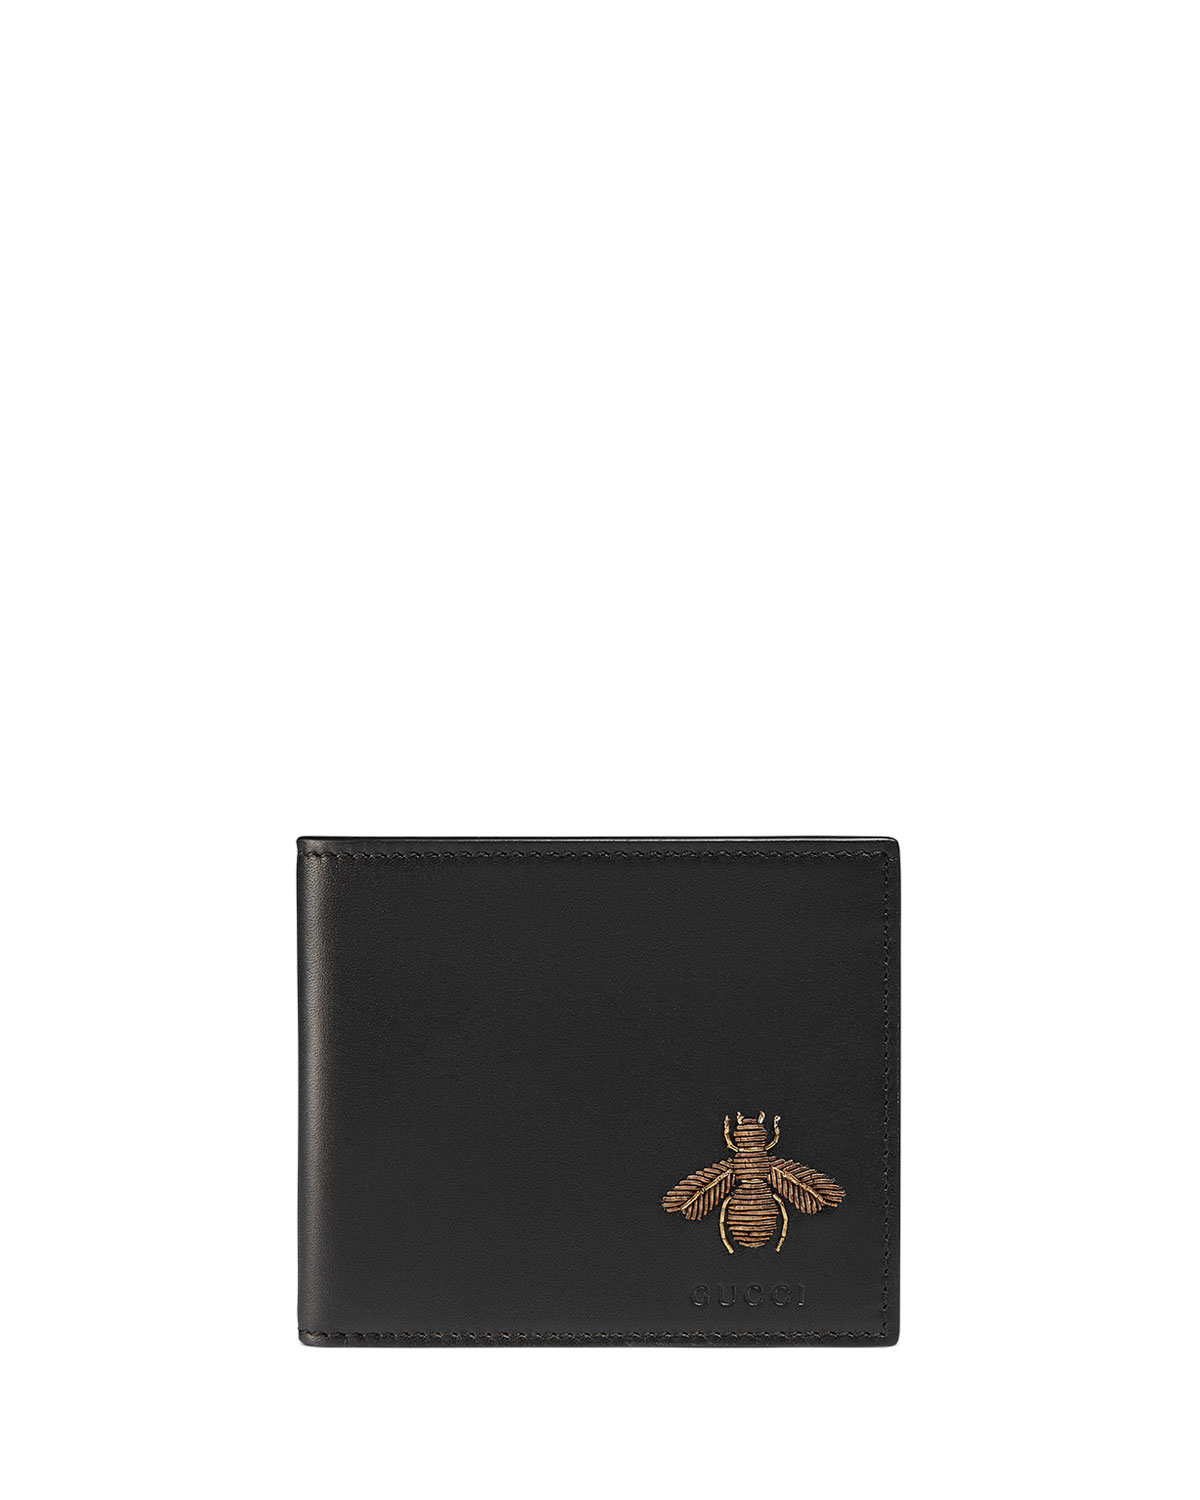 89553b862d4233 Gucci Bee Embroidery Bi-Fold Leather Wallet | Neiman Marcus